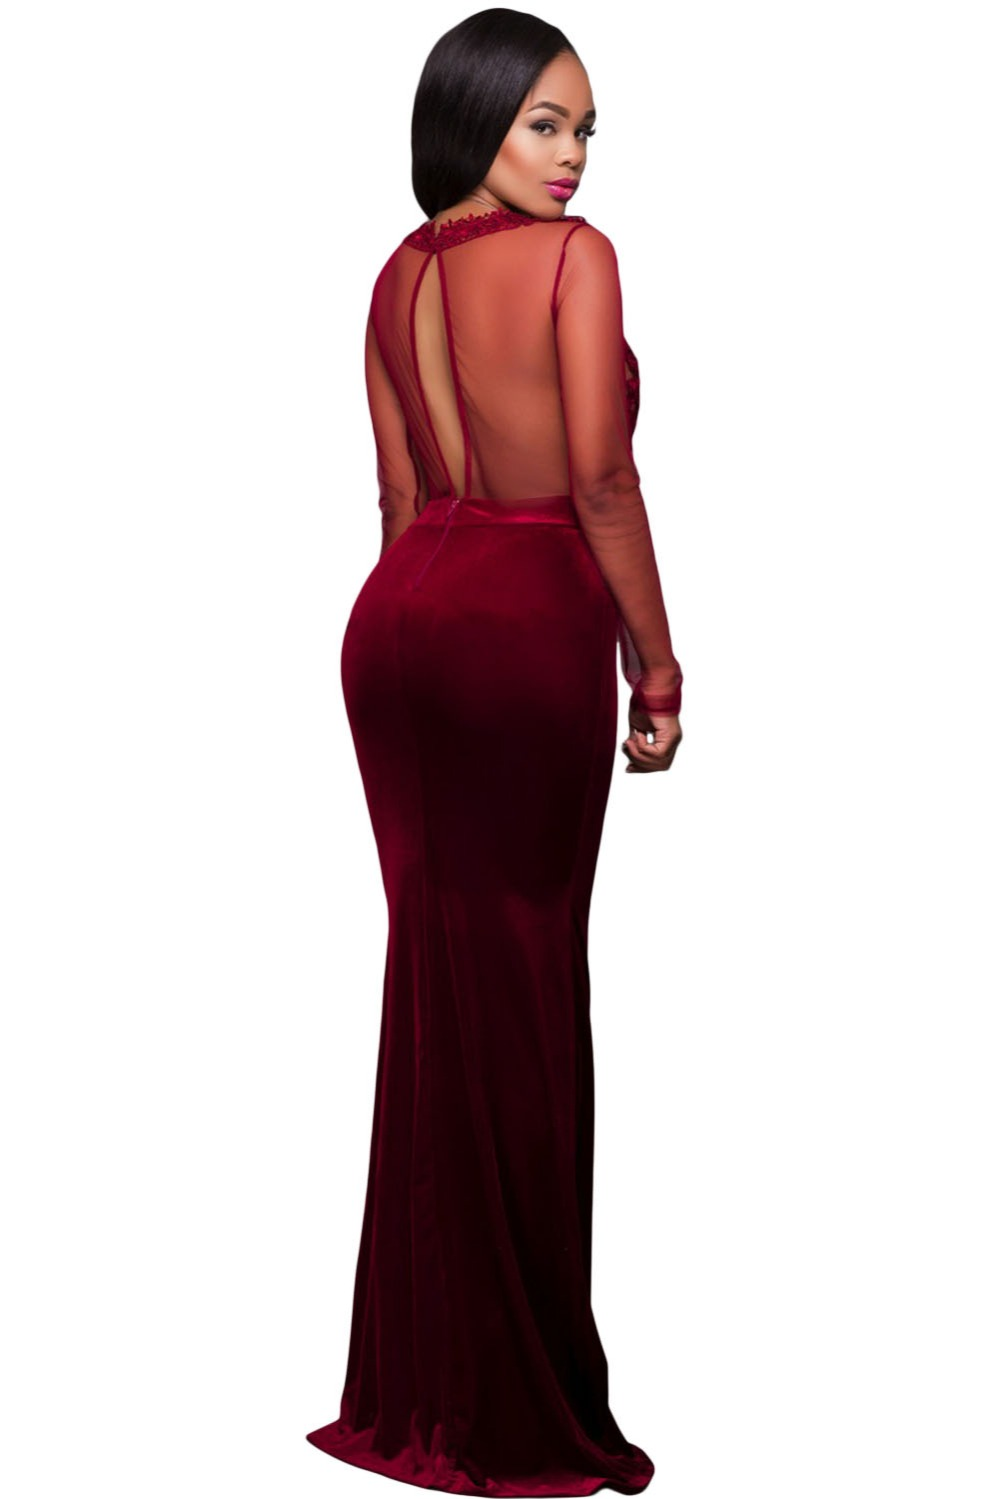 Aliexpress.com : Buy 2017 Autumn New Sexy Club Backless Dresses ...